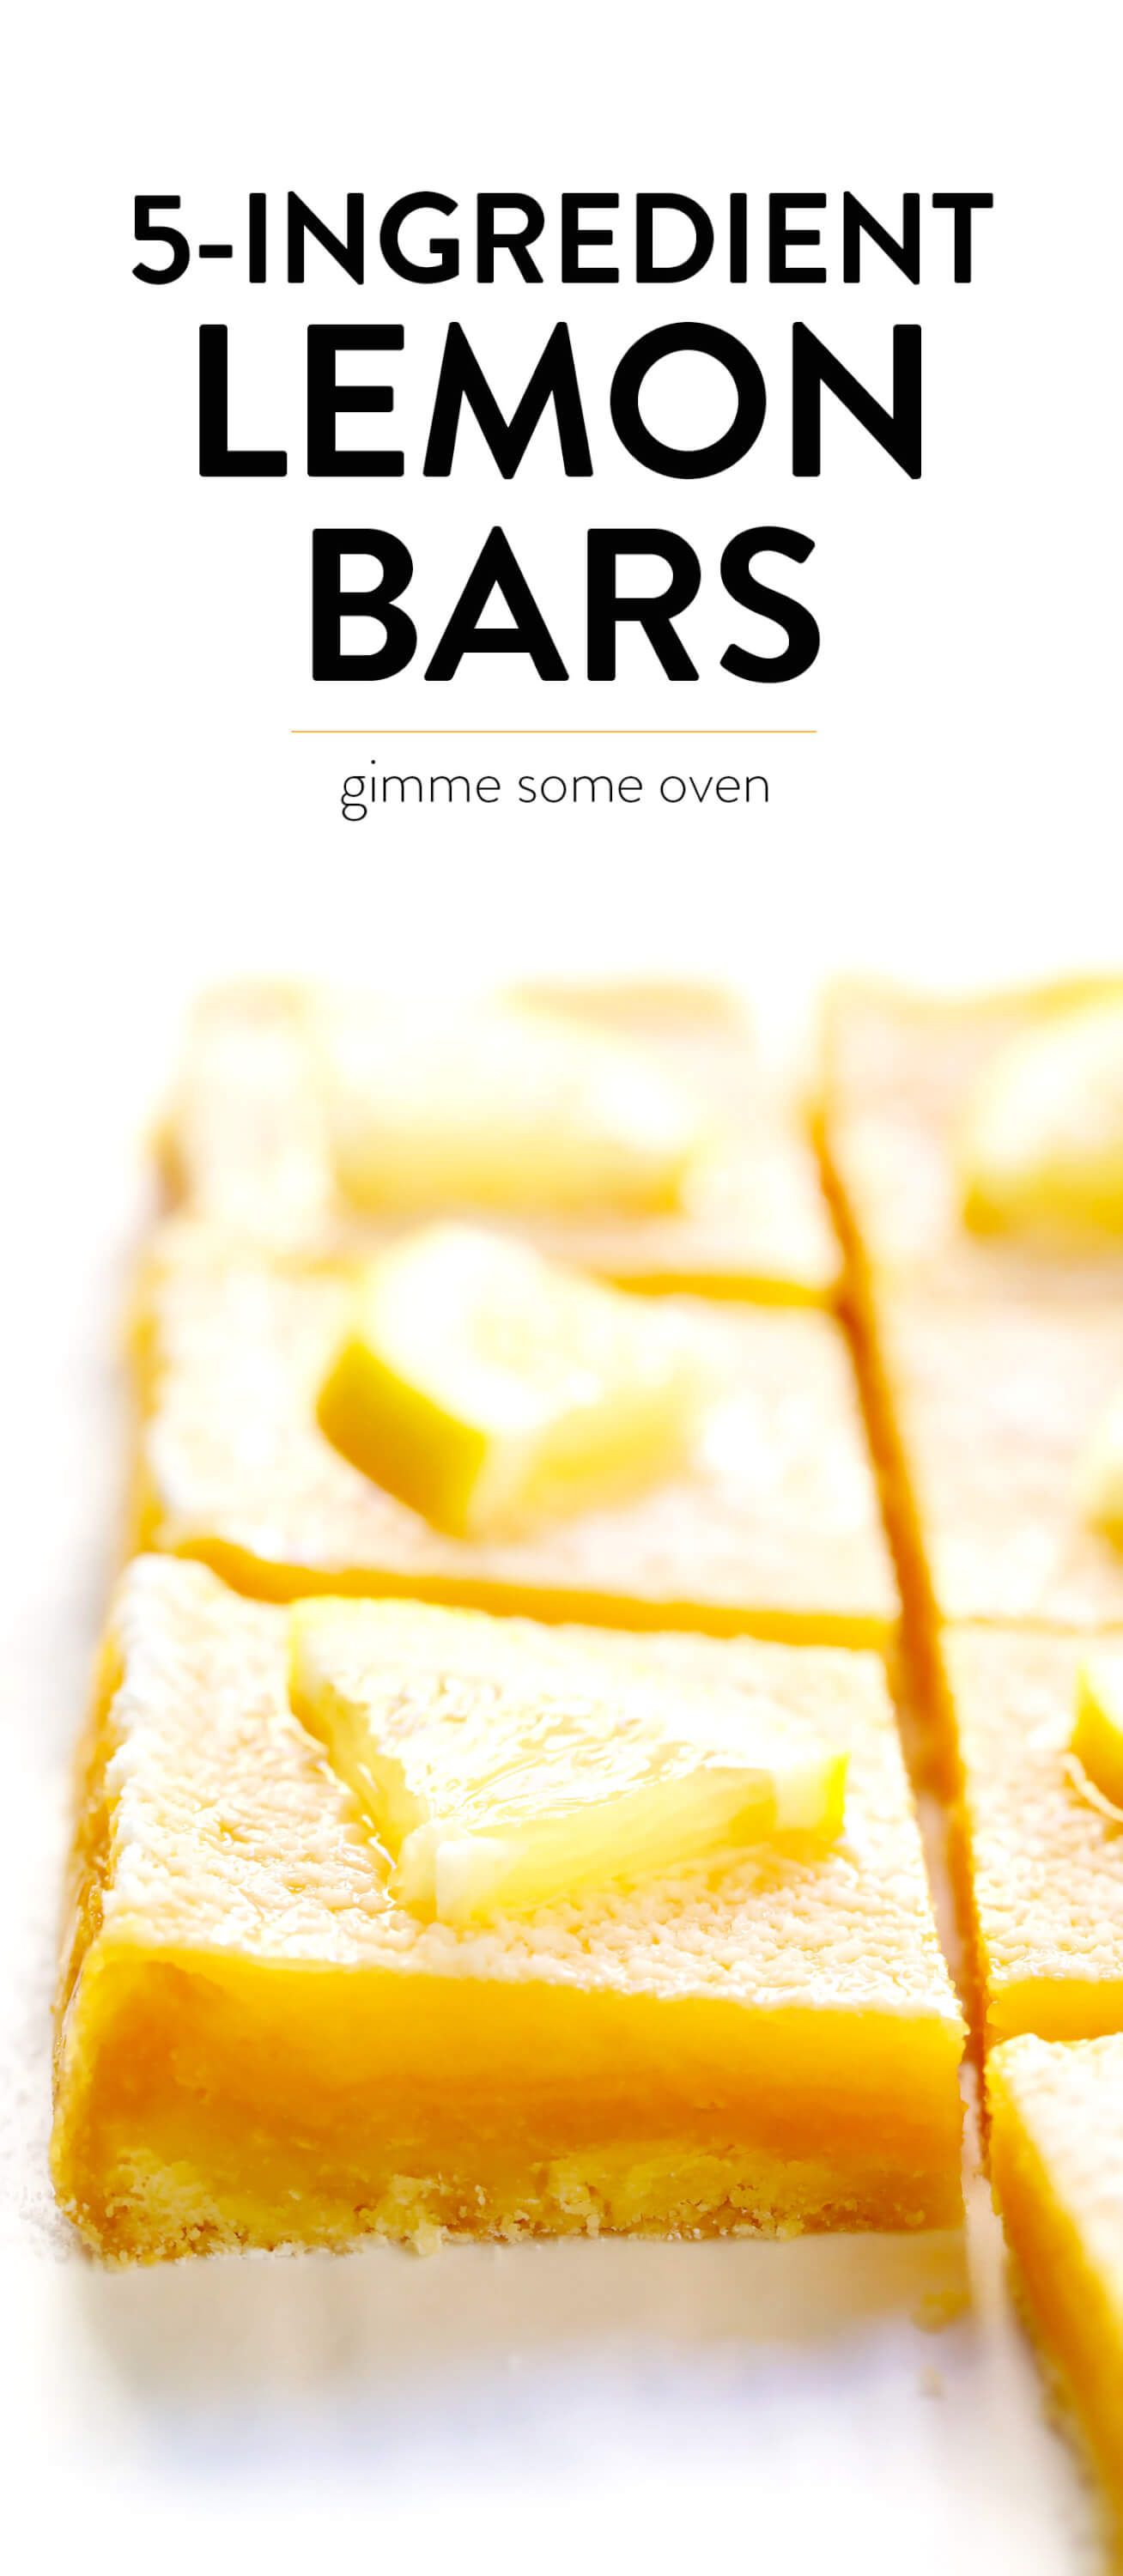 Learn how to make the best lemon bars with this 5-ingredient easy lemon bars recipe! It's a simple